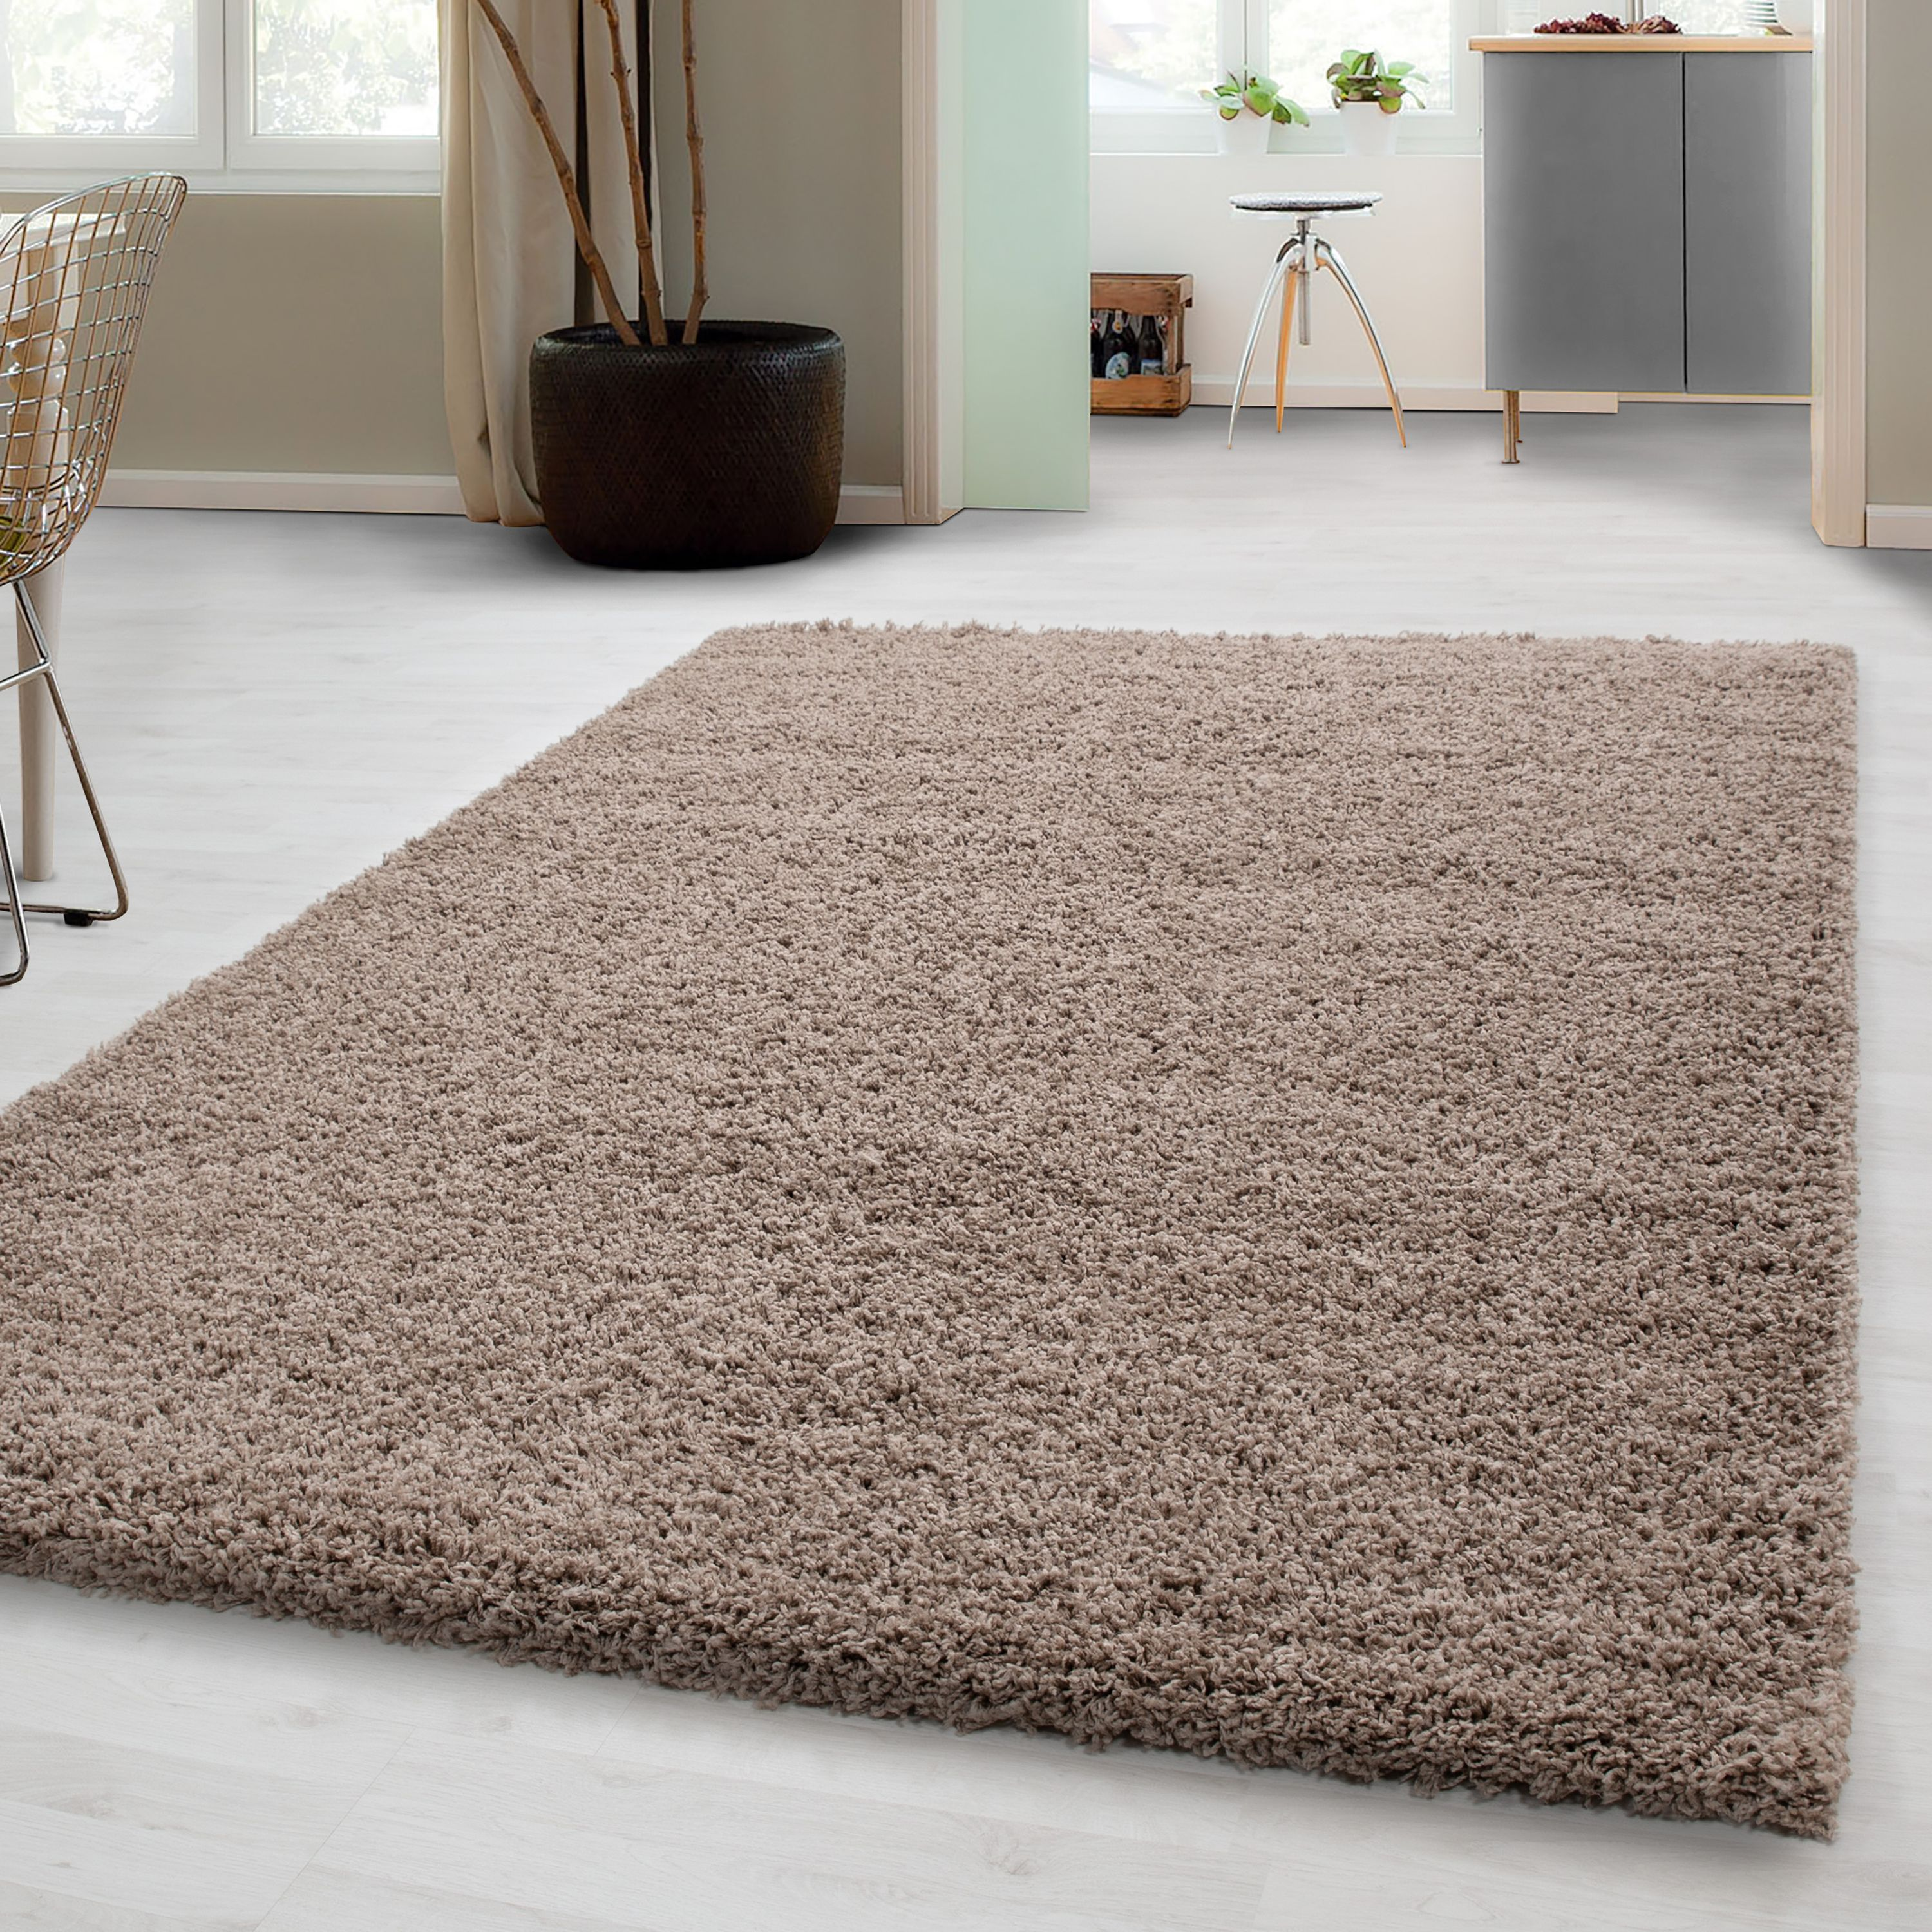 Shaggy Teppich 300x400 Hochflor Shaggy Teppich In Beige Unicolor Langflor